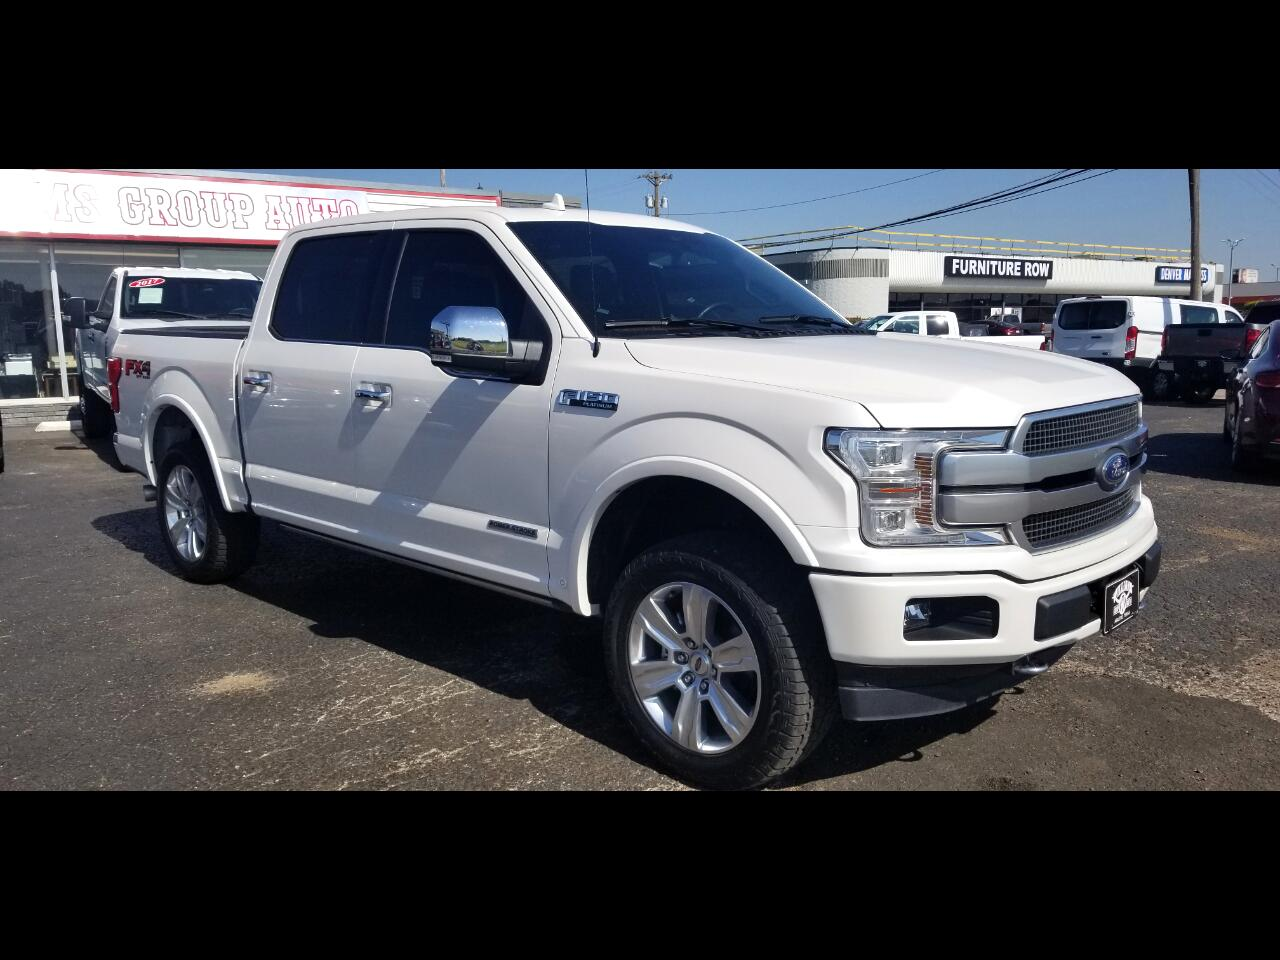 2018 Ford F-150 SuperCrew Platinum FX4